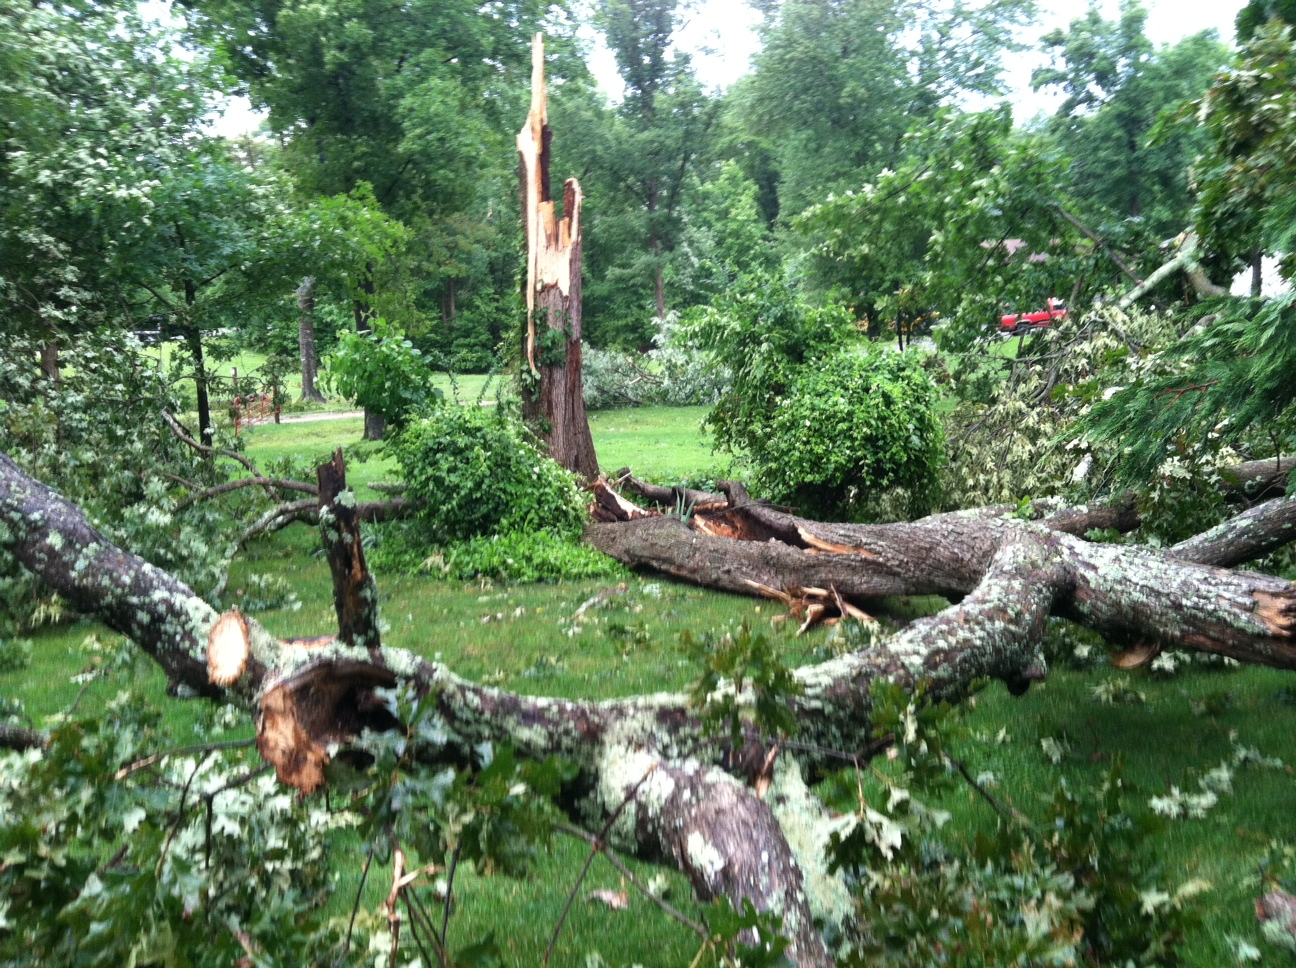 Two tornadoes damage homes, facilities in St. Mary's County